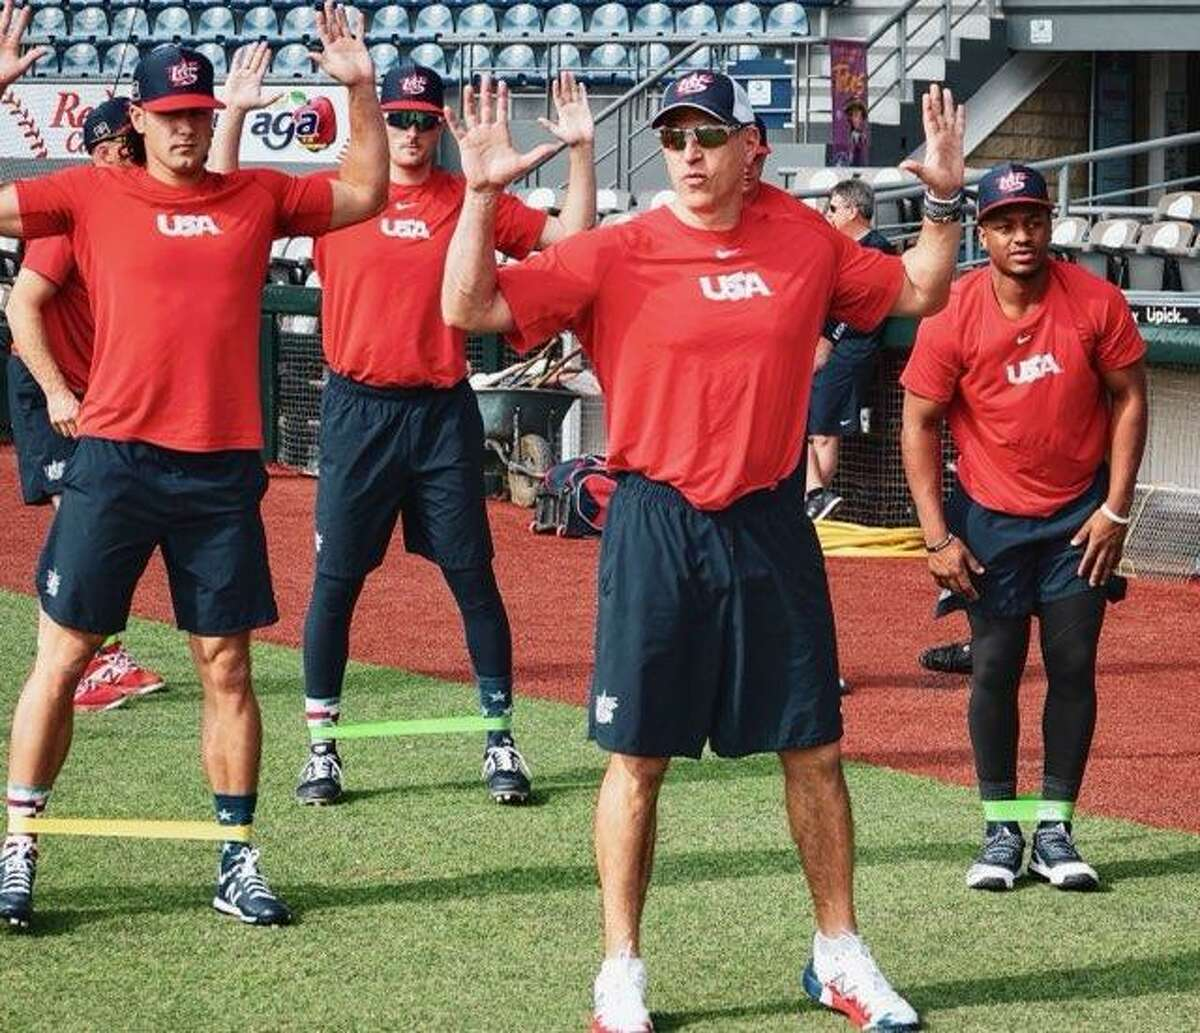 Orange's Jim Ronai is the U.S. Olympic baseball team's strength and conditioning coach and physical therapist as well as the assistant athletic trainer in Tokyo.